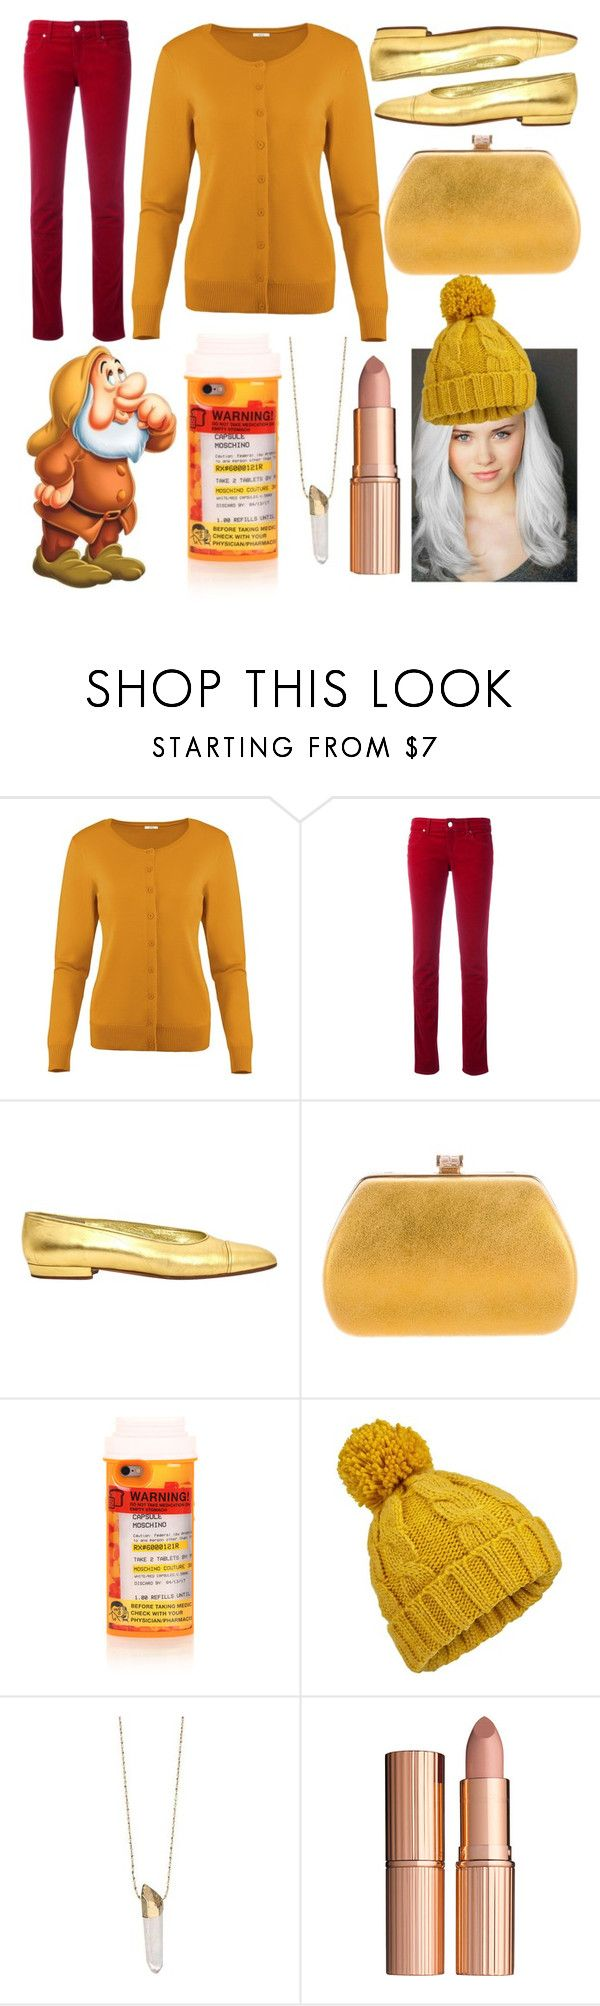 """""""Sneezy!"""" by sisibff ❤ liked on Polyvore featuring Armani Jeans, Chanel, Judith Leiber, Moschino, Miss Selfridge and Charlotte Tilbury"""